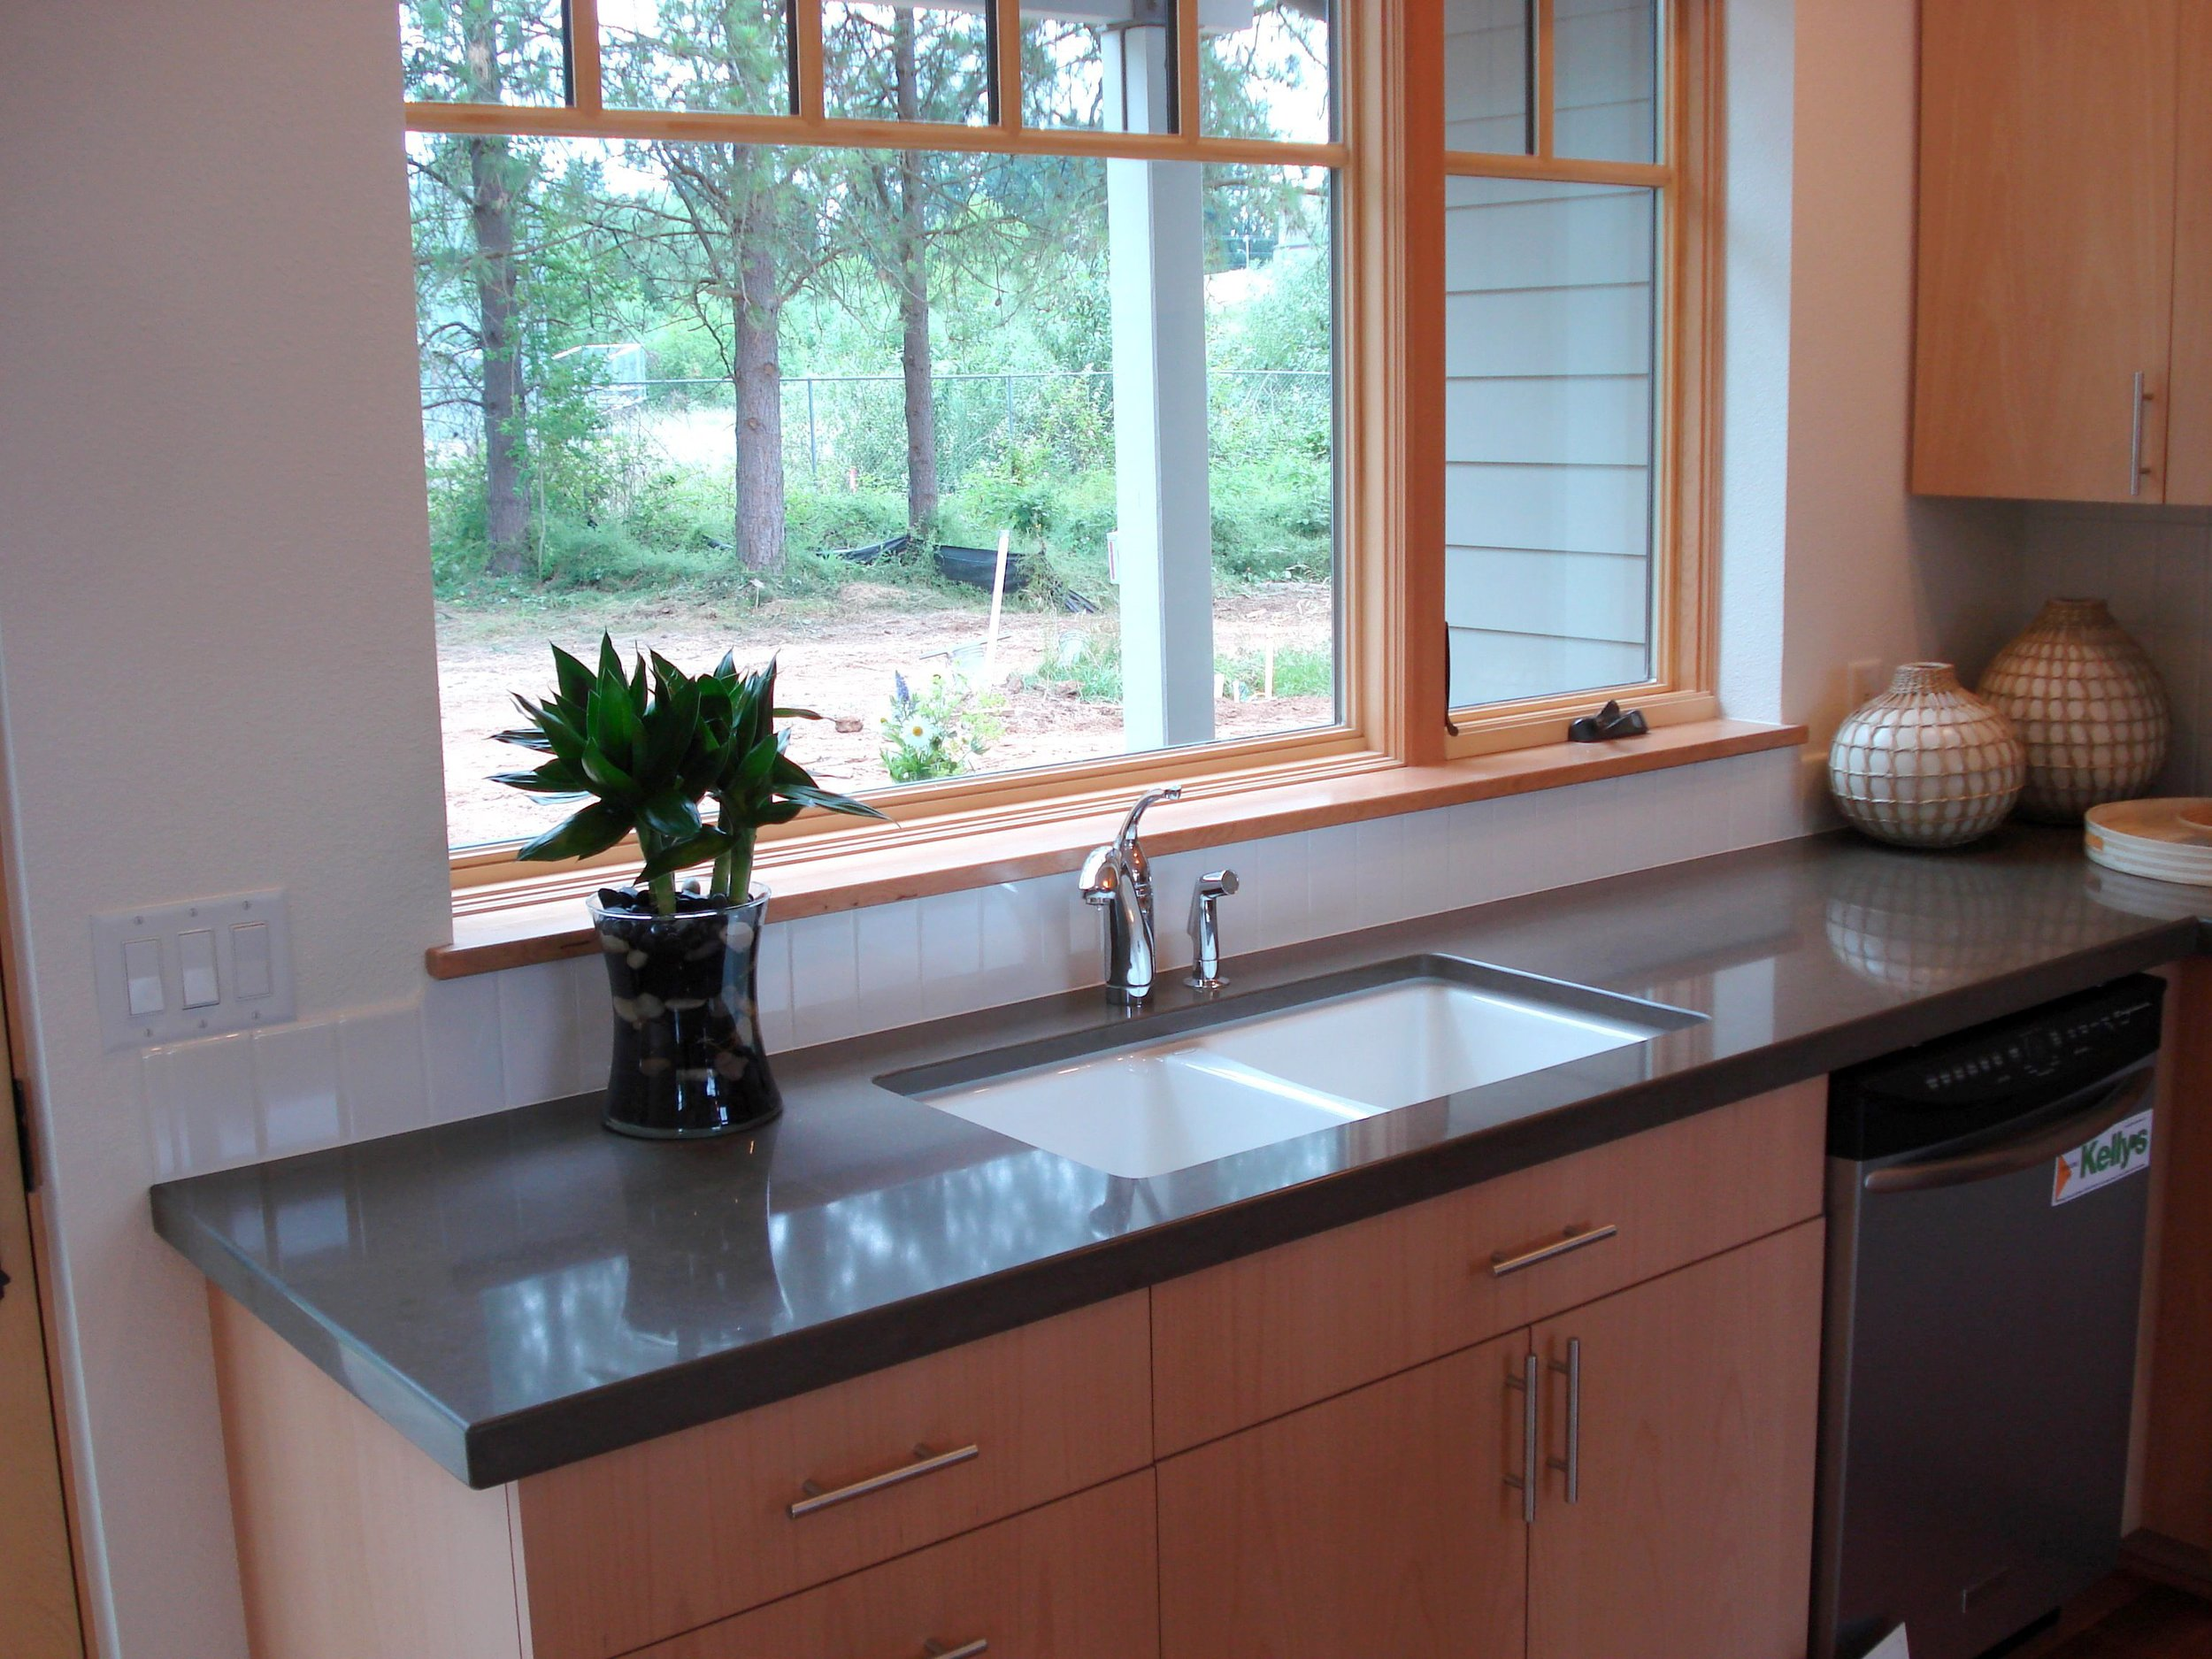 cottage kitchen, cambria quartz counters.jpg